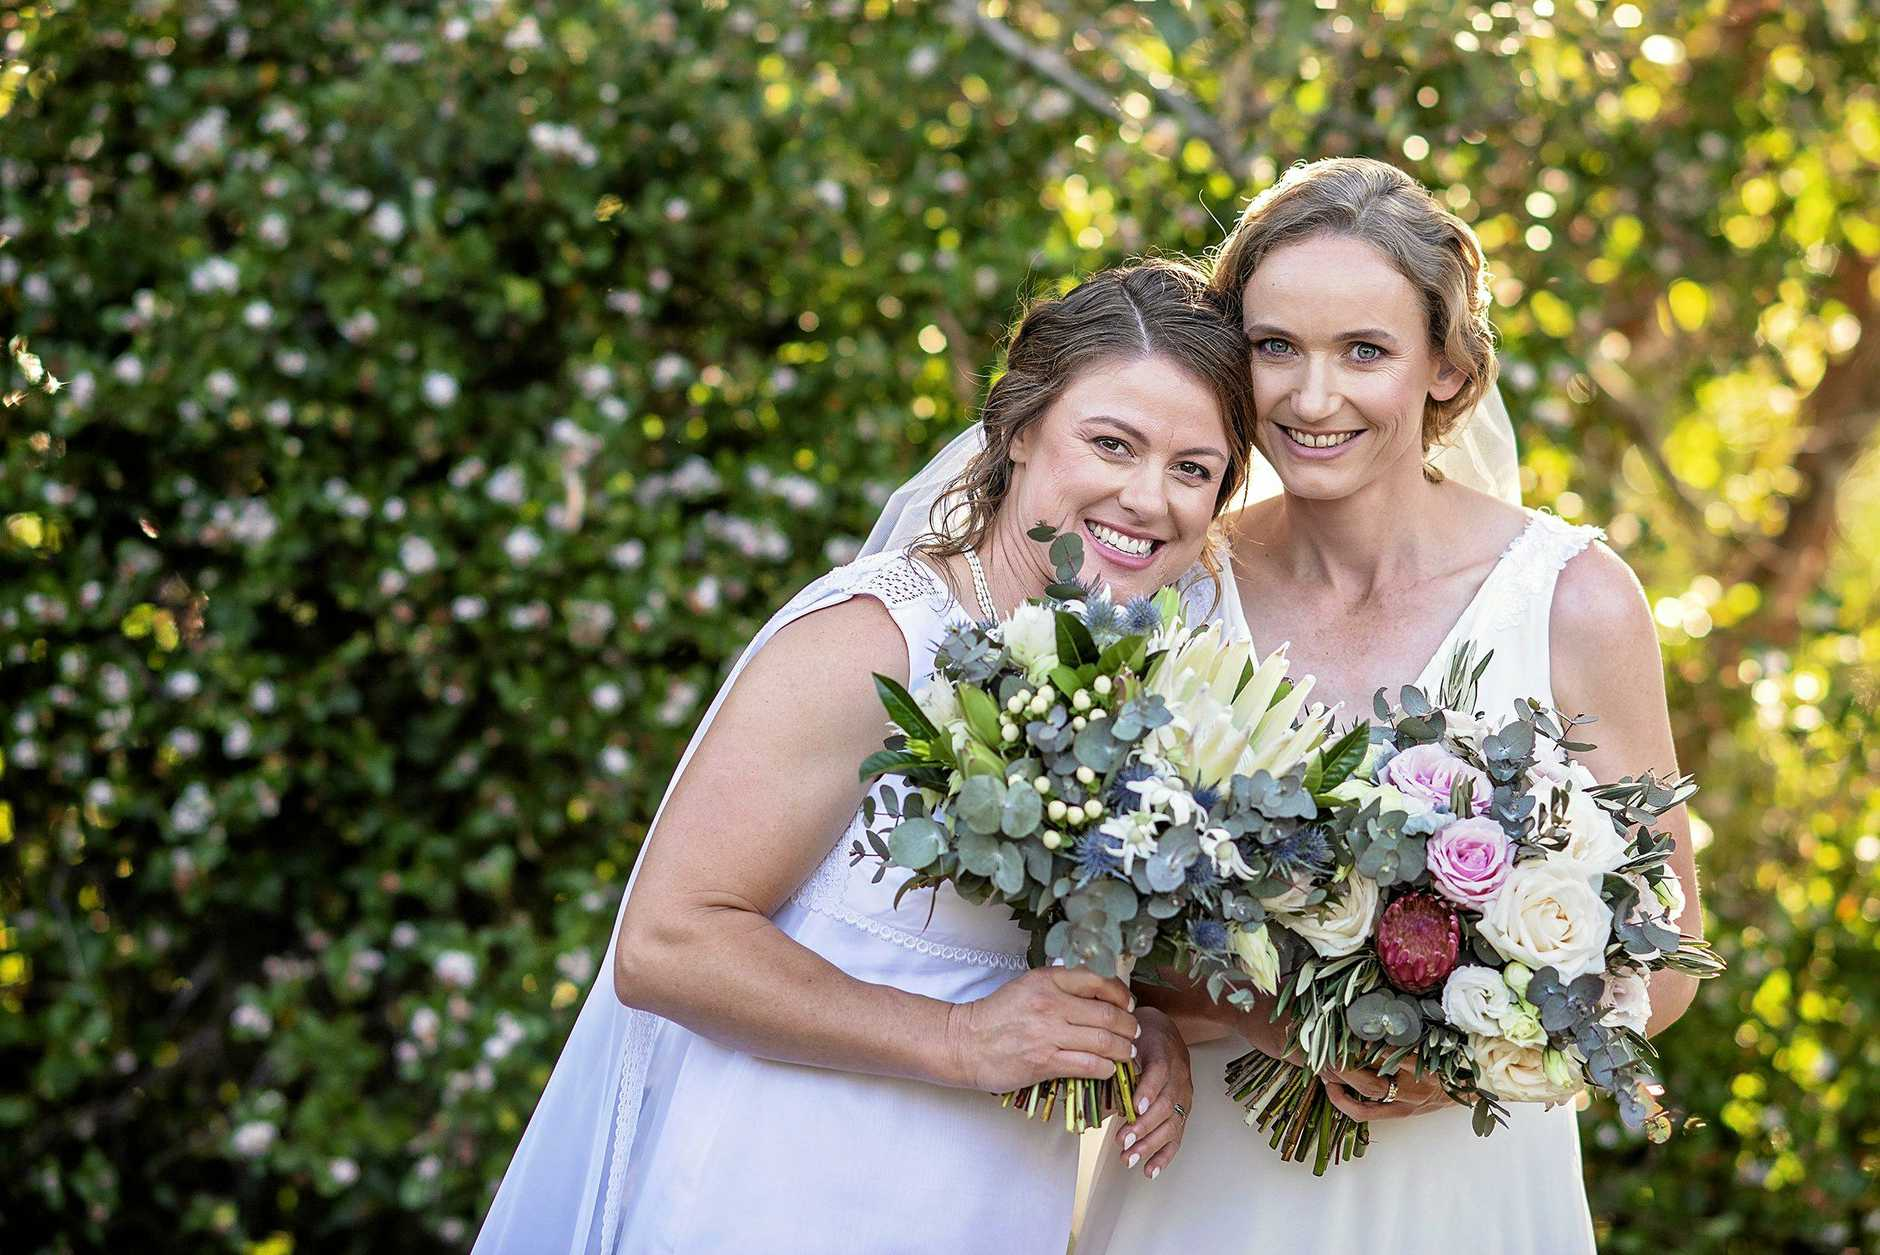 The loved-up couple Jenny Munro and Larisa Seghers on their wedding day.